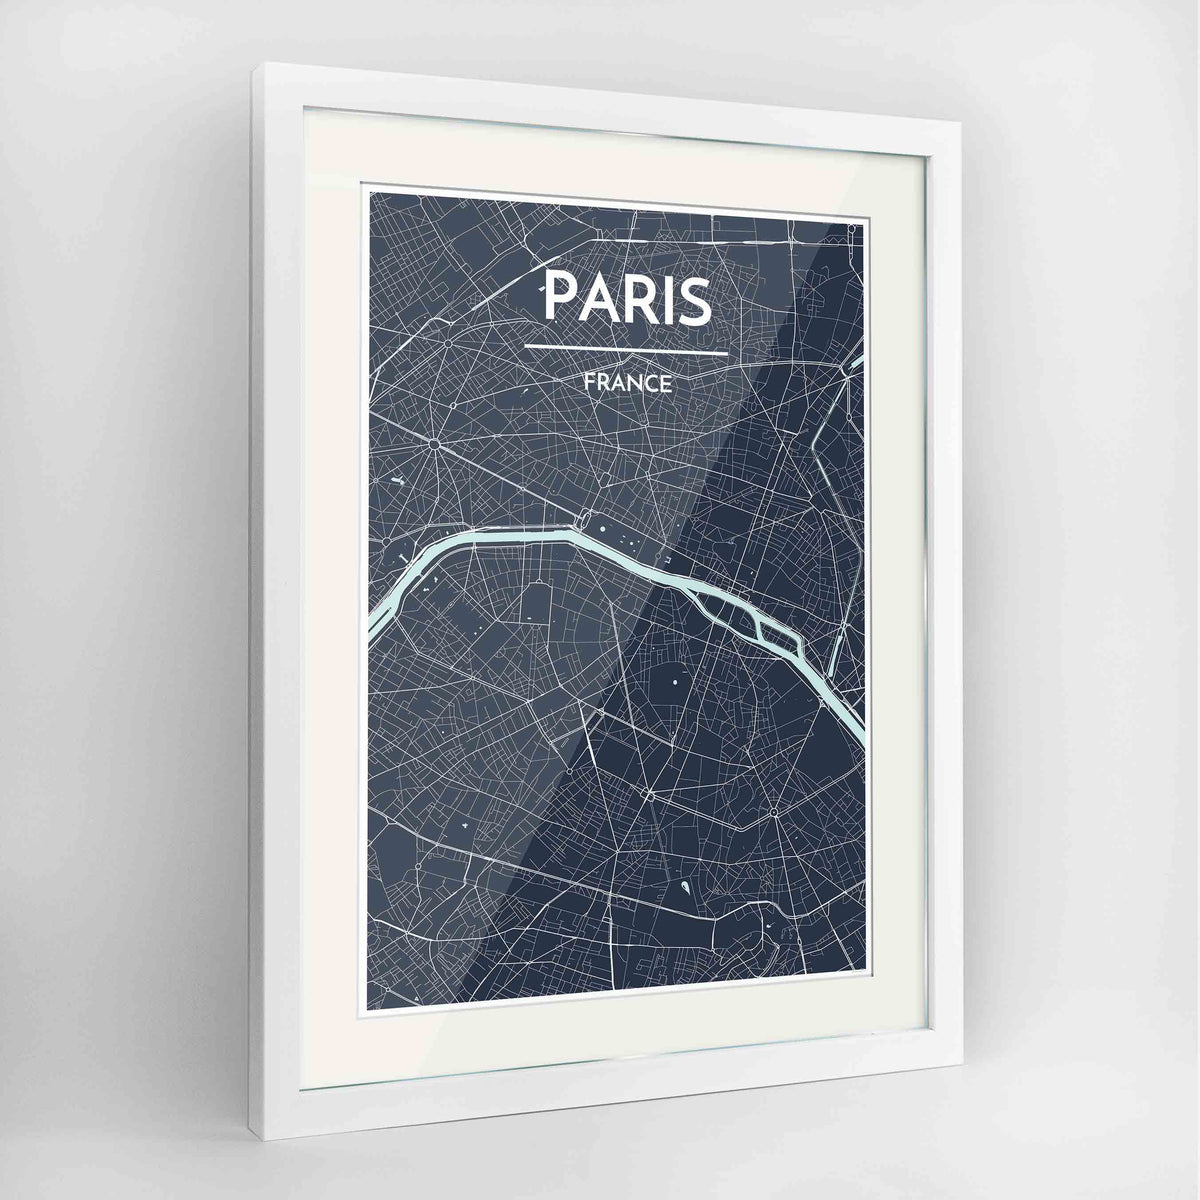 "Framed Paris Map Art Print 24x36"" Contemporary White frame Point Two Design Group"